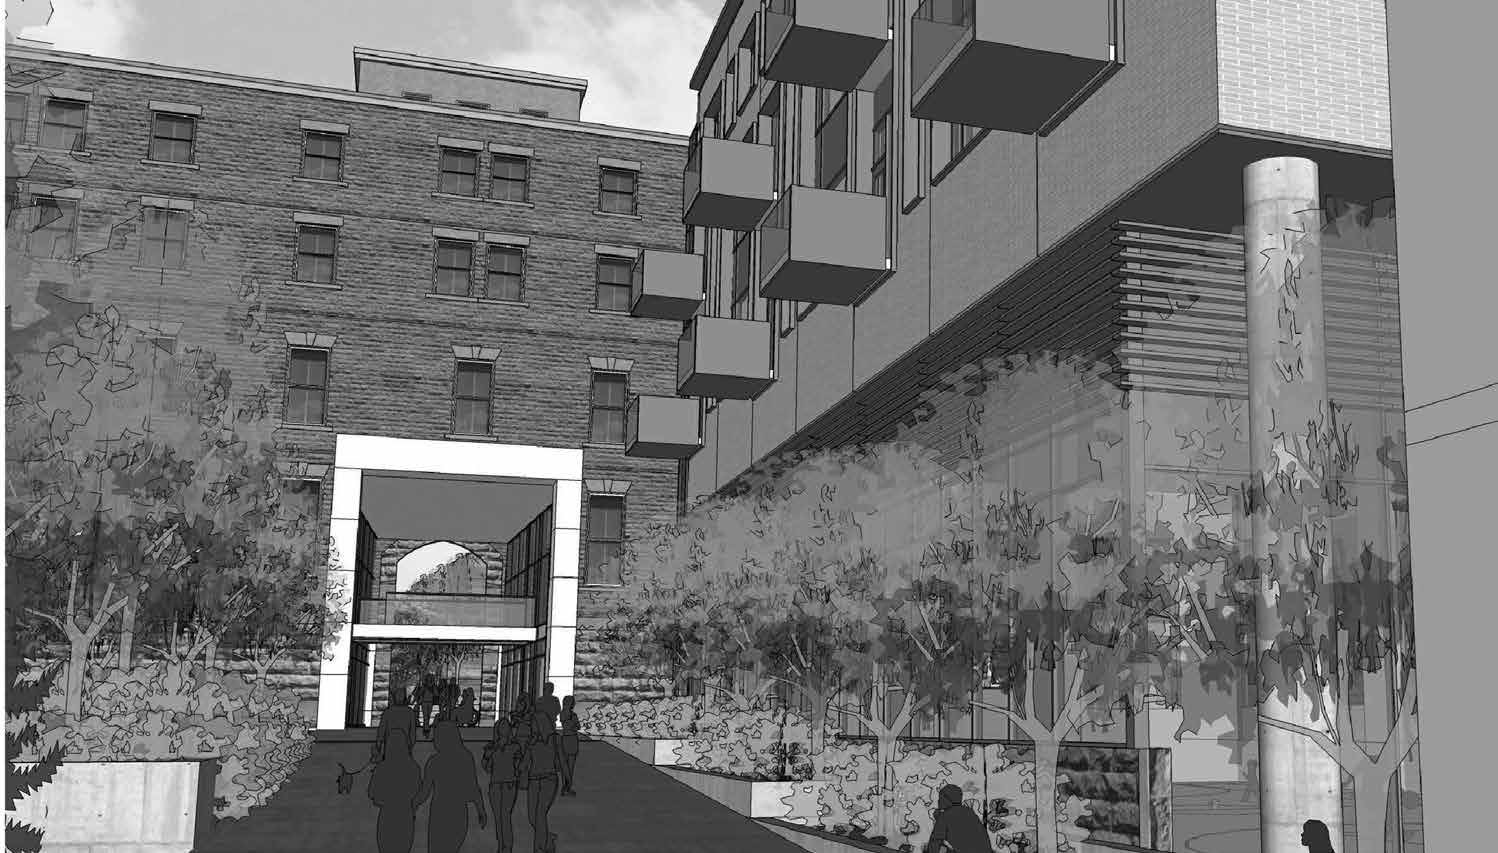 One of the proposals for the Deschâtelets building would provide pedestrian access through the main entrance to connect to the river path. Image by Barry J. Hobin & Associates